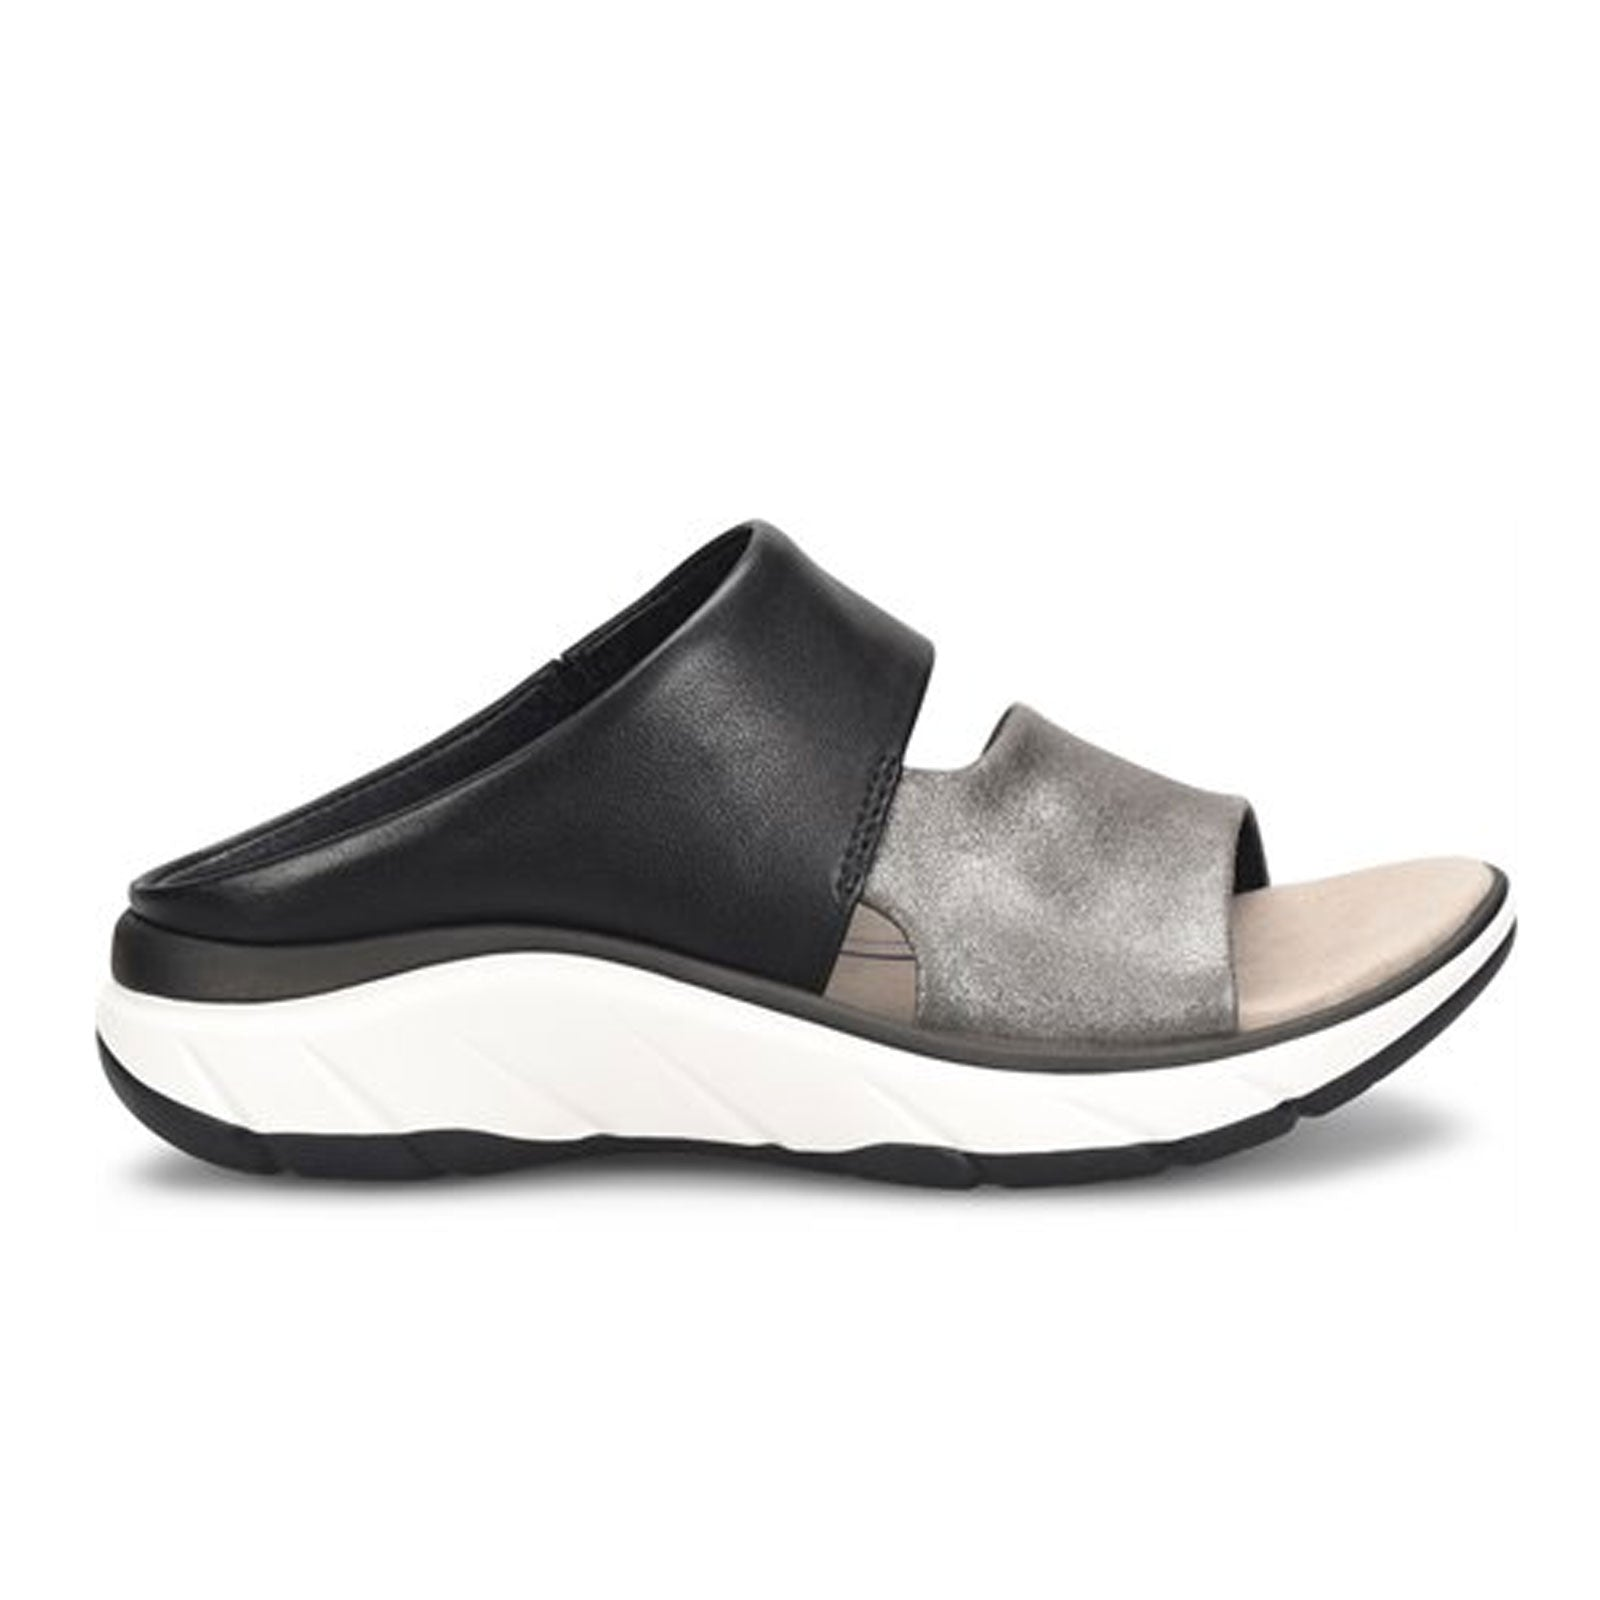 Bionica Airmont (Women) - Pewter/Black Sandals - Slide Sandals - The Heel Shoe Fitters